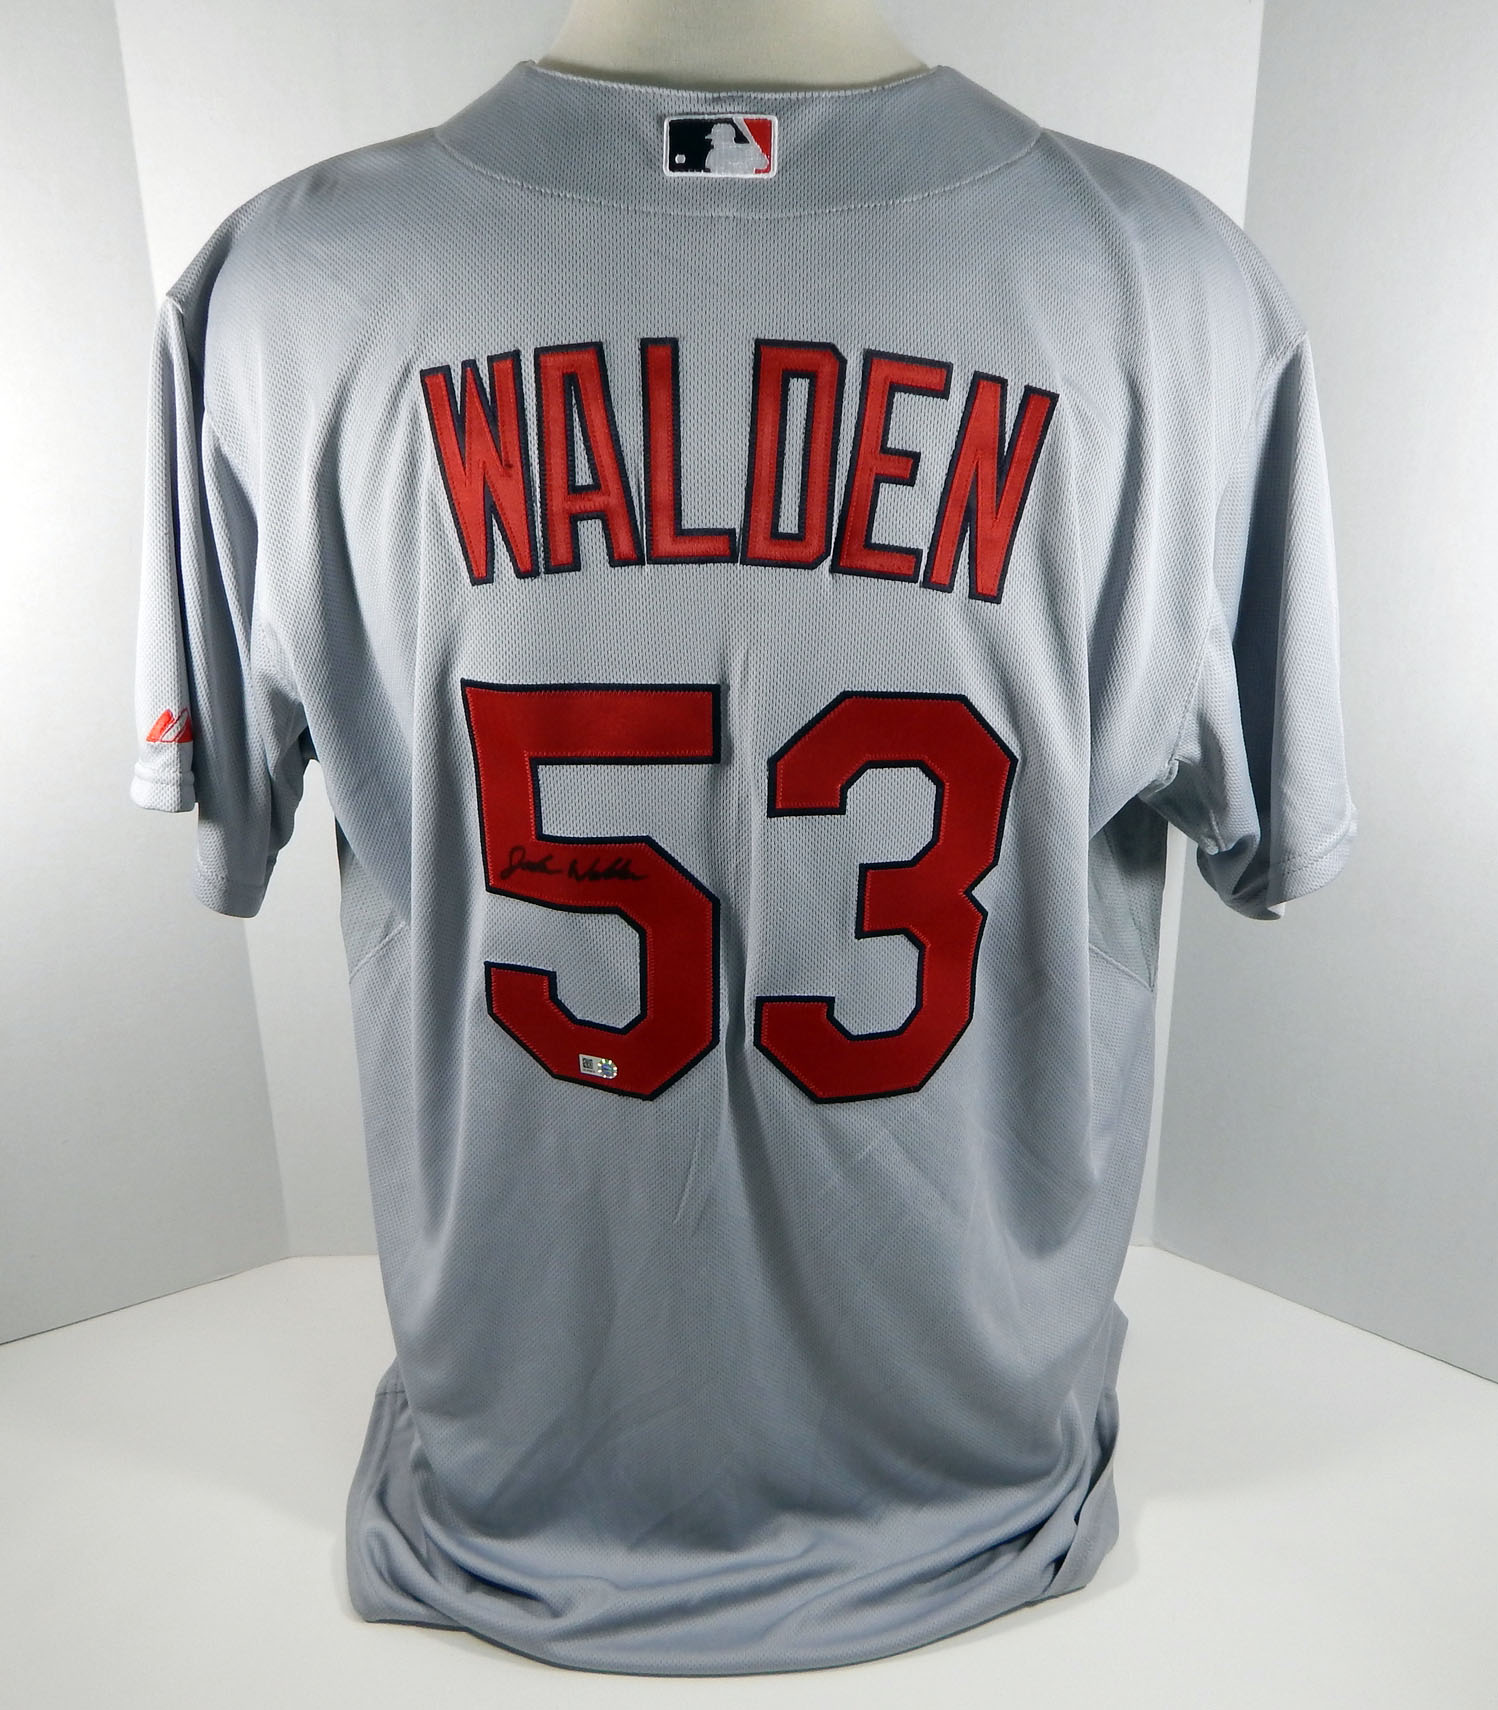 quality design 57f63 68b1c Details about St. Louis Cardinals Jordan Walden #53 Game Issued Signed Grey  Jersey